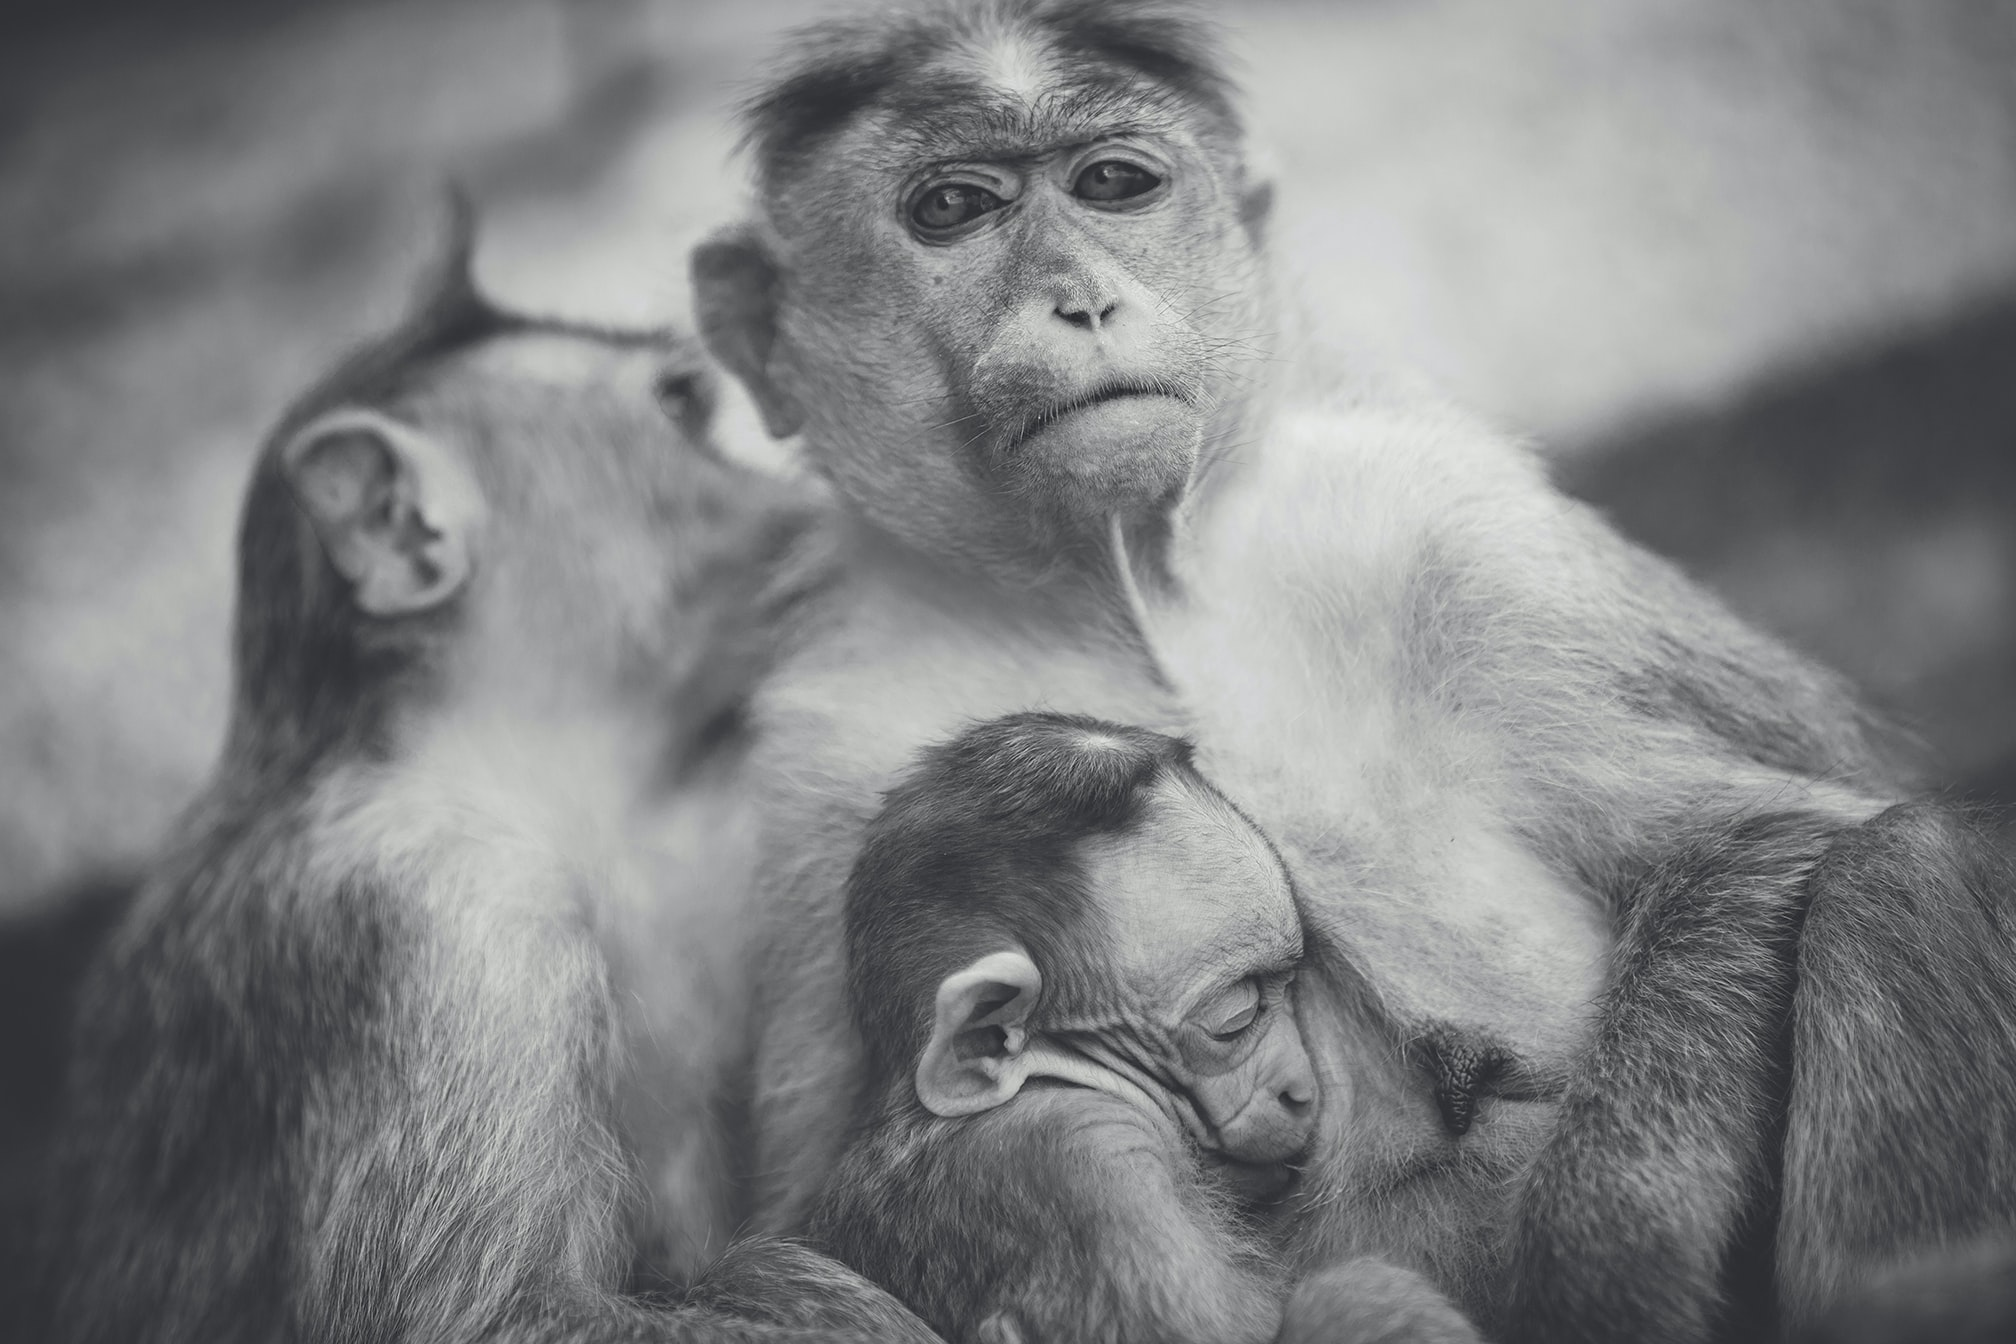 grayscale of monkey family photo